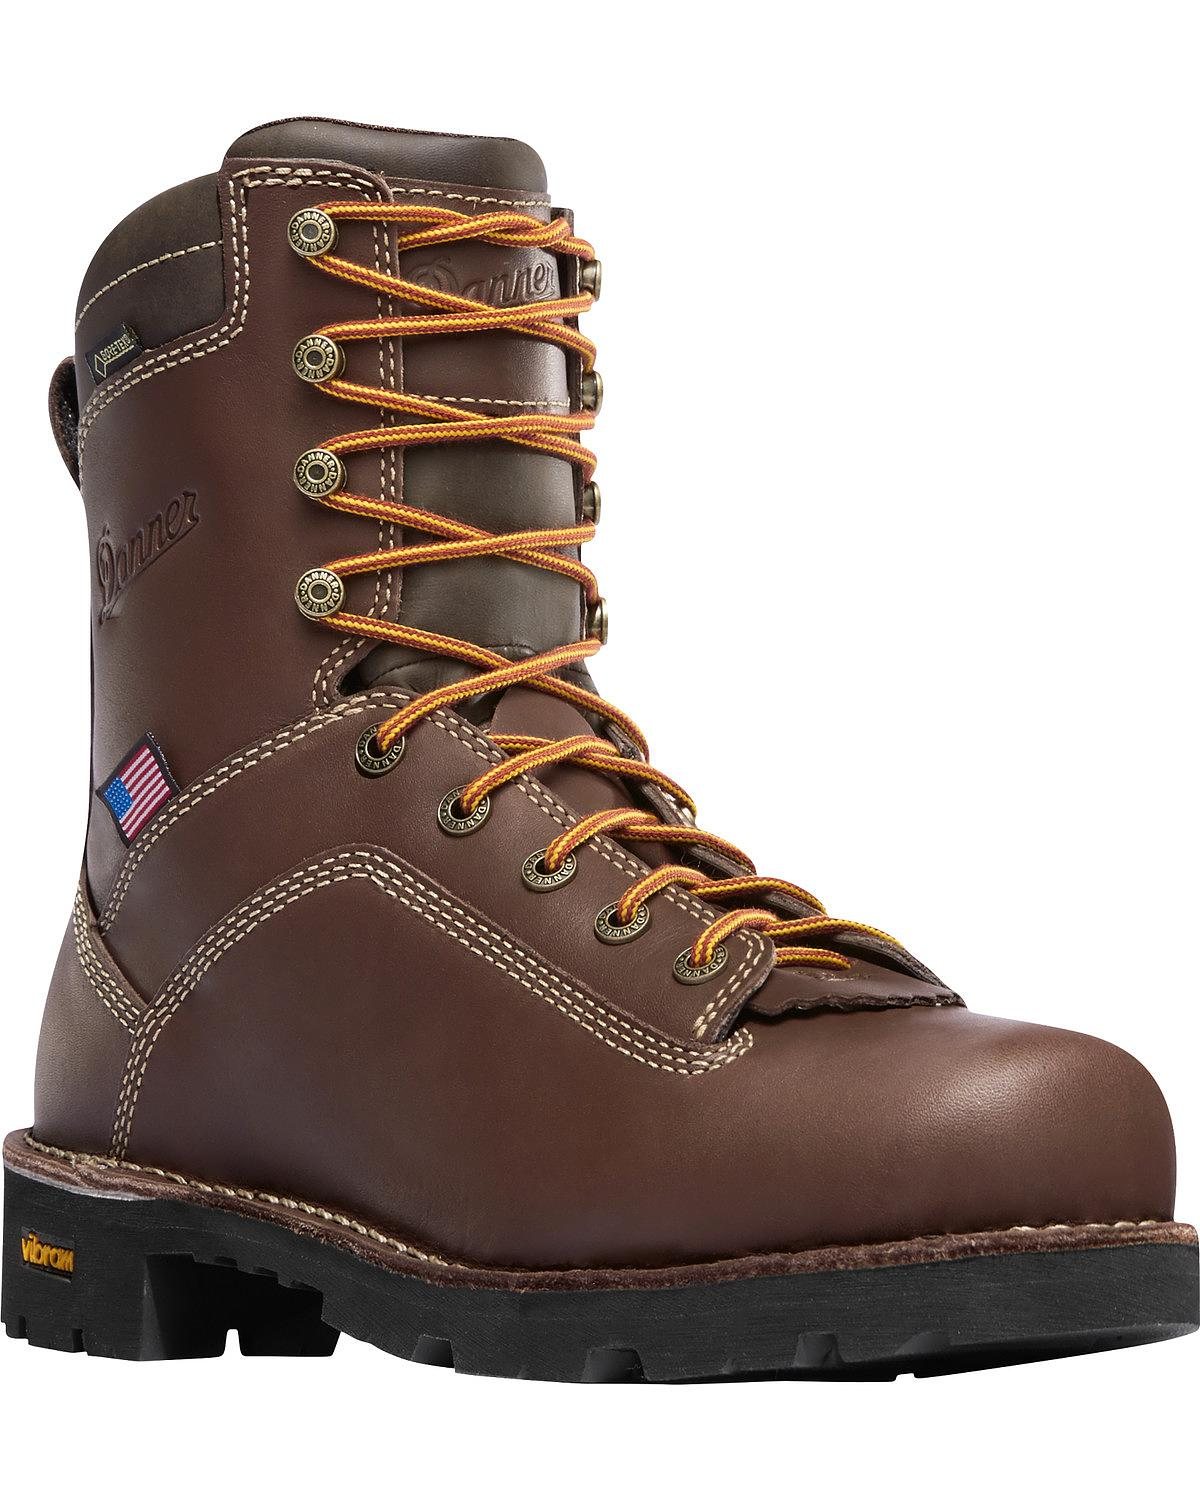 Danner Men Quarry Usa 8' Boot by Lacrosse Footwear Inc.